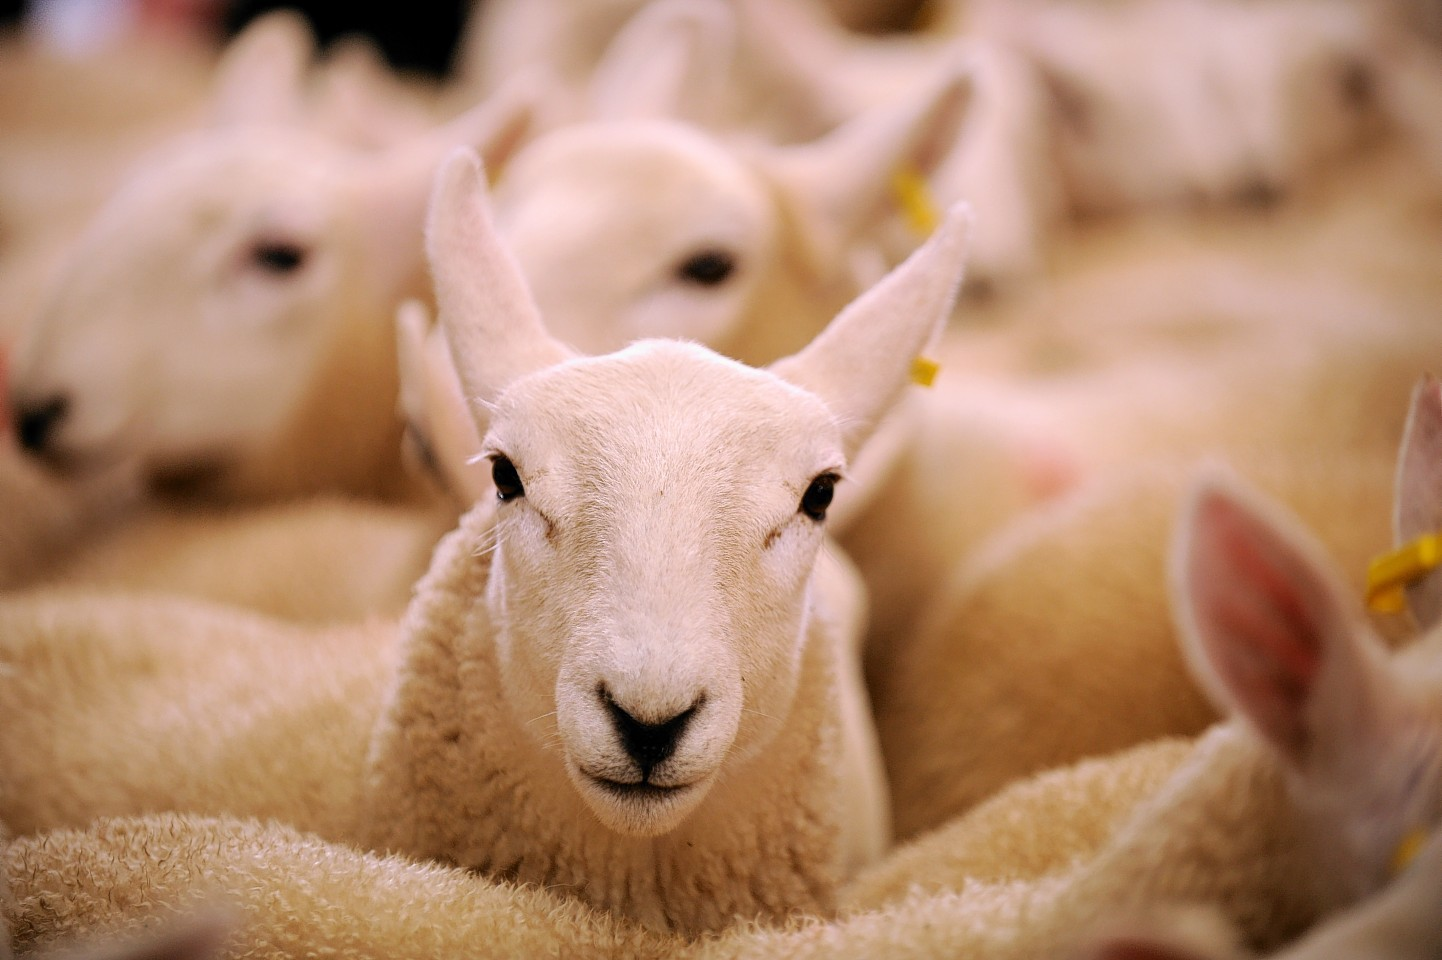 Lamb prices have been hit by currency rates